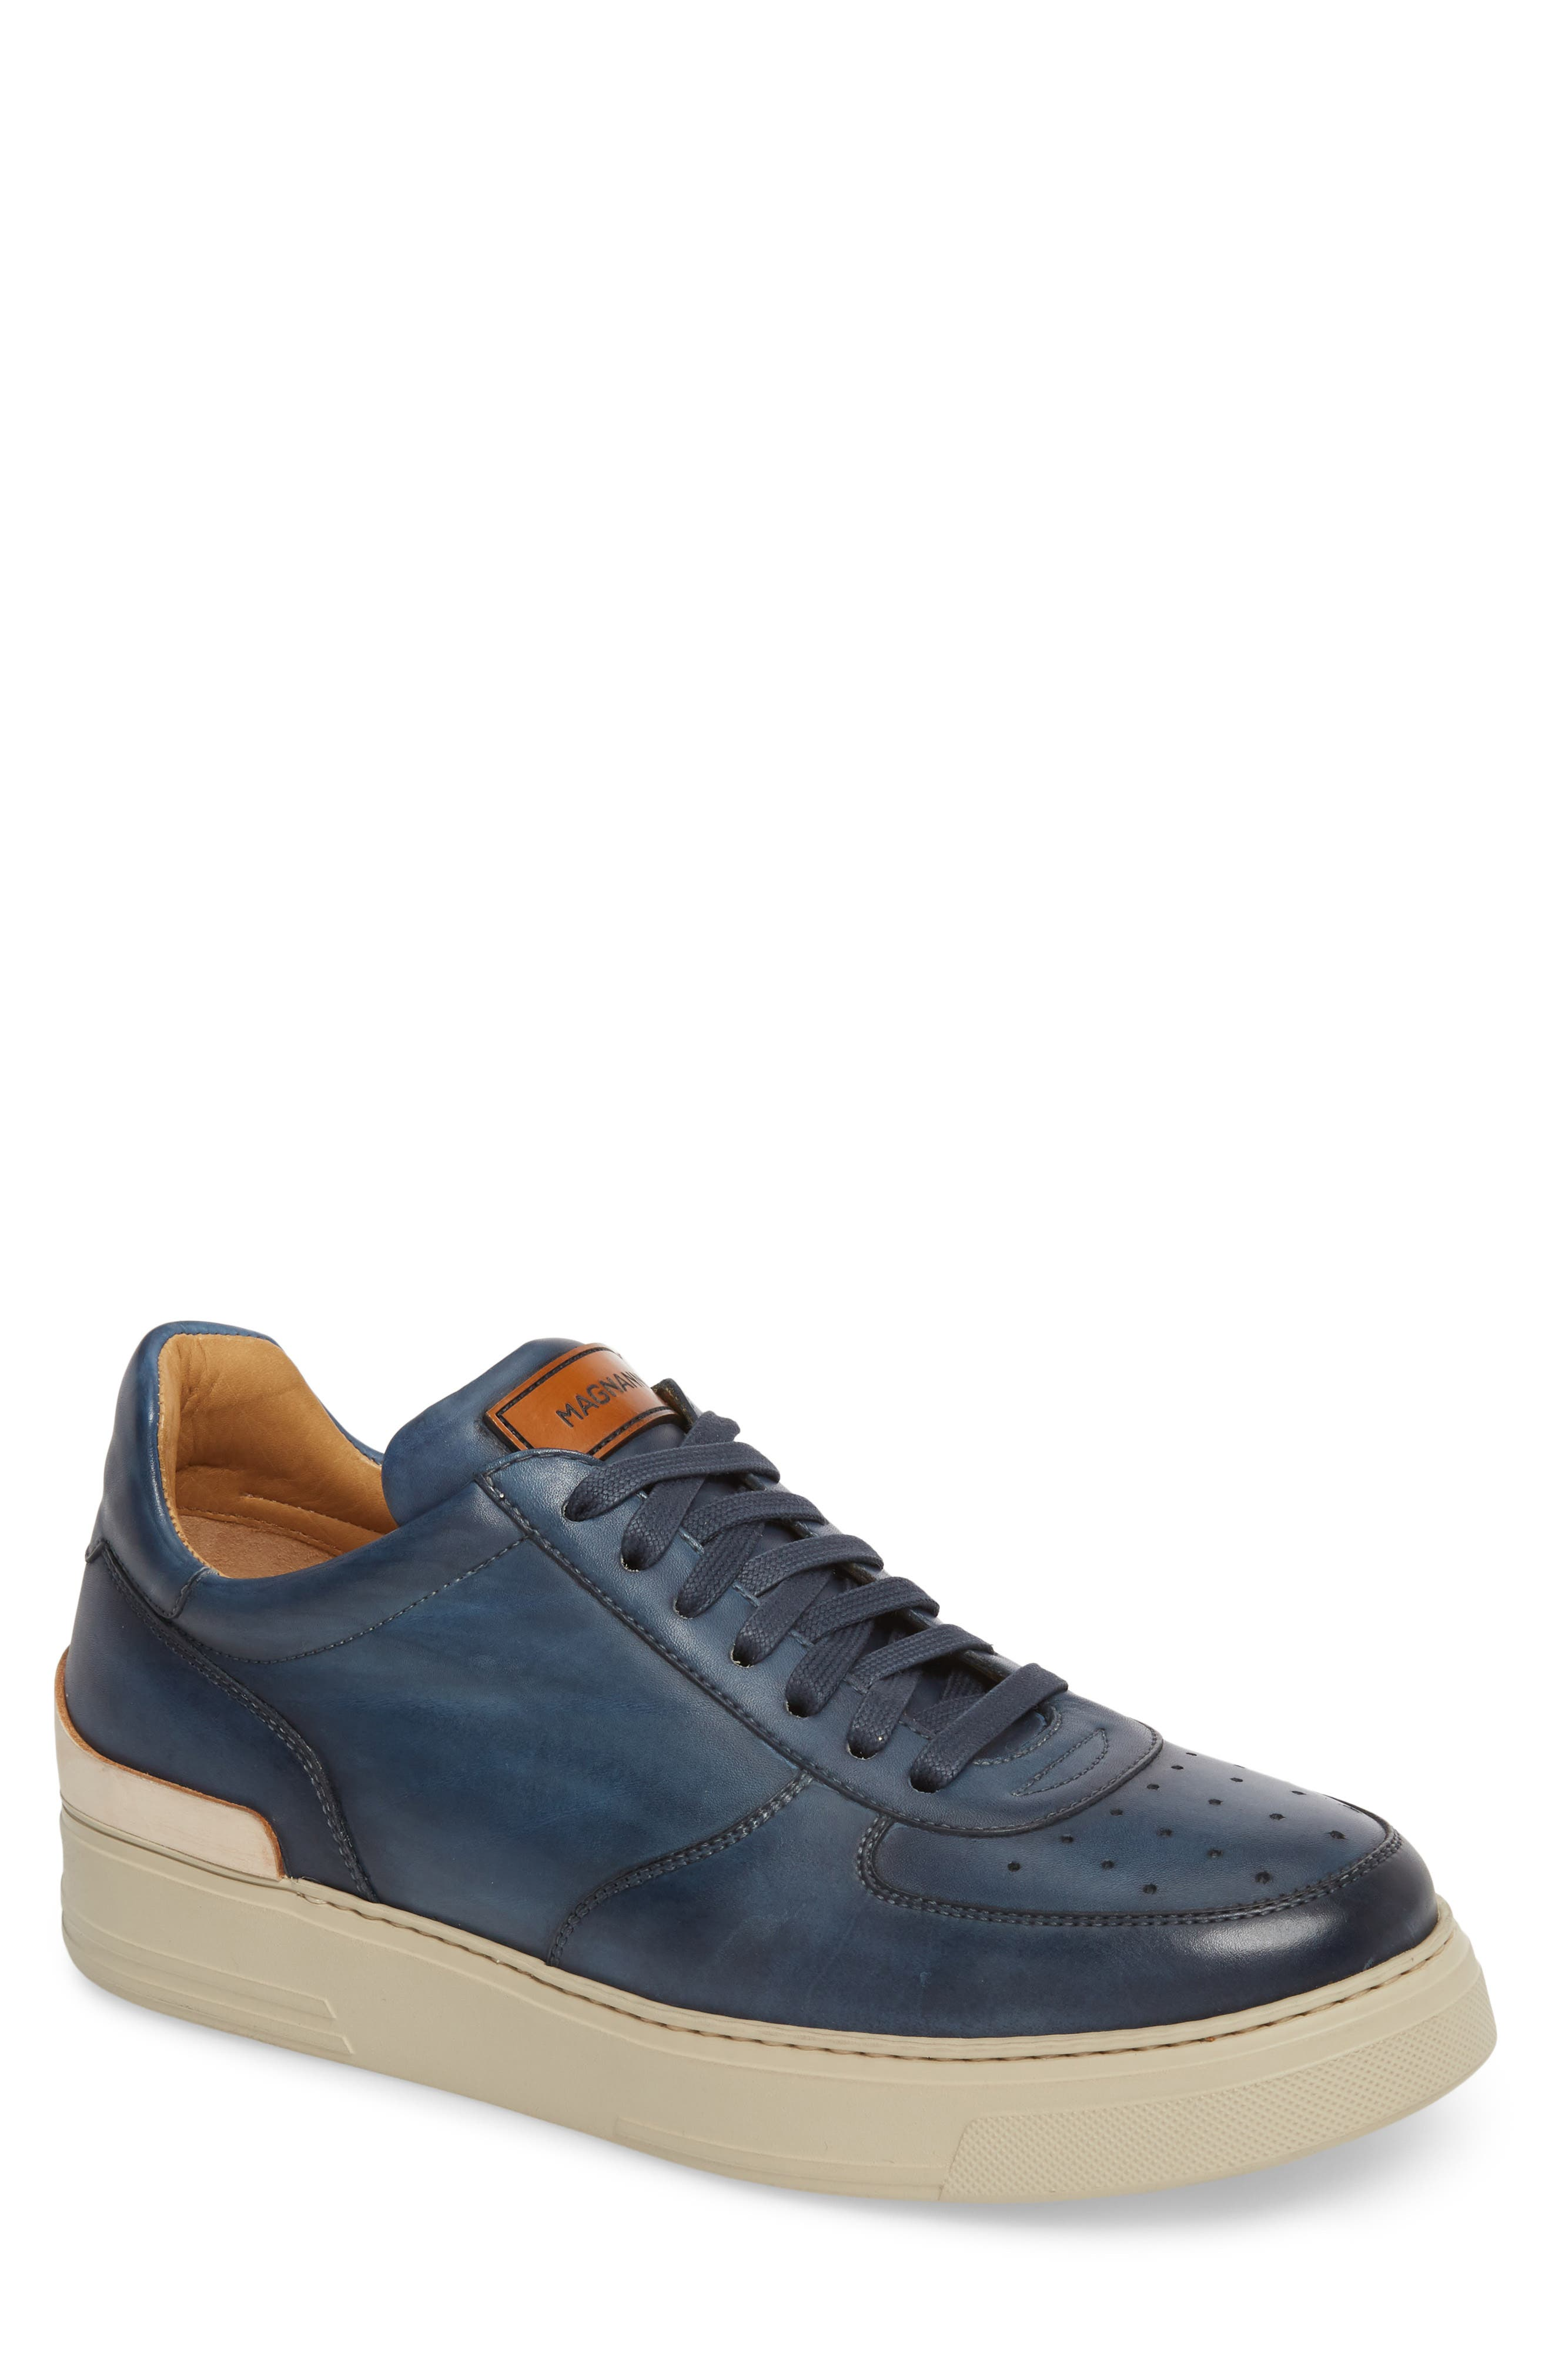 Vada Lo Lace Up Sneaker,                             Main thumbnail 1, color,                             Blue Leather